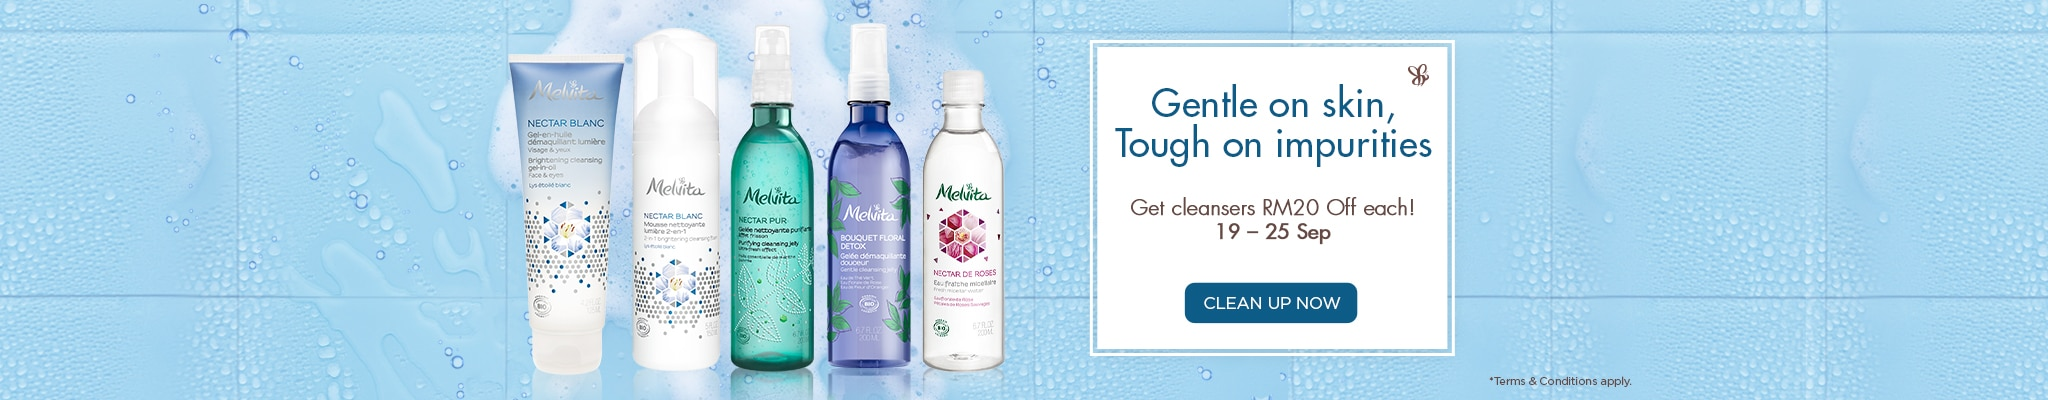 RM20 Off Cleansers